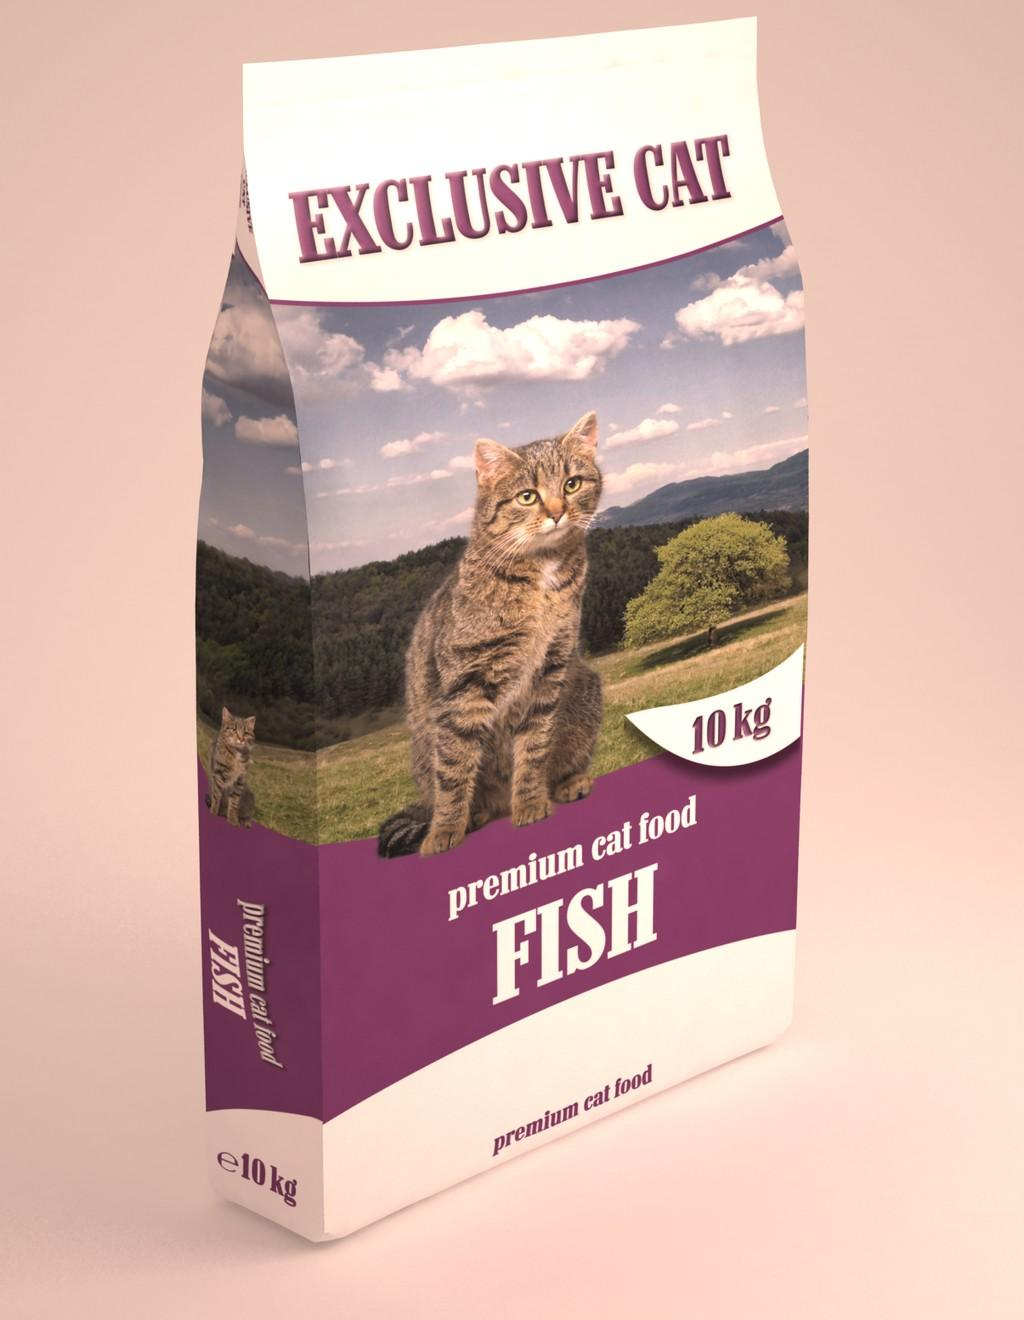 EXCLUSIVE CAT - Fish